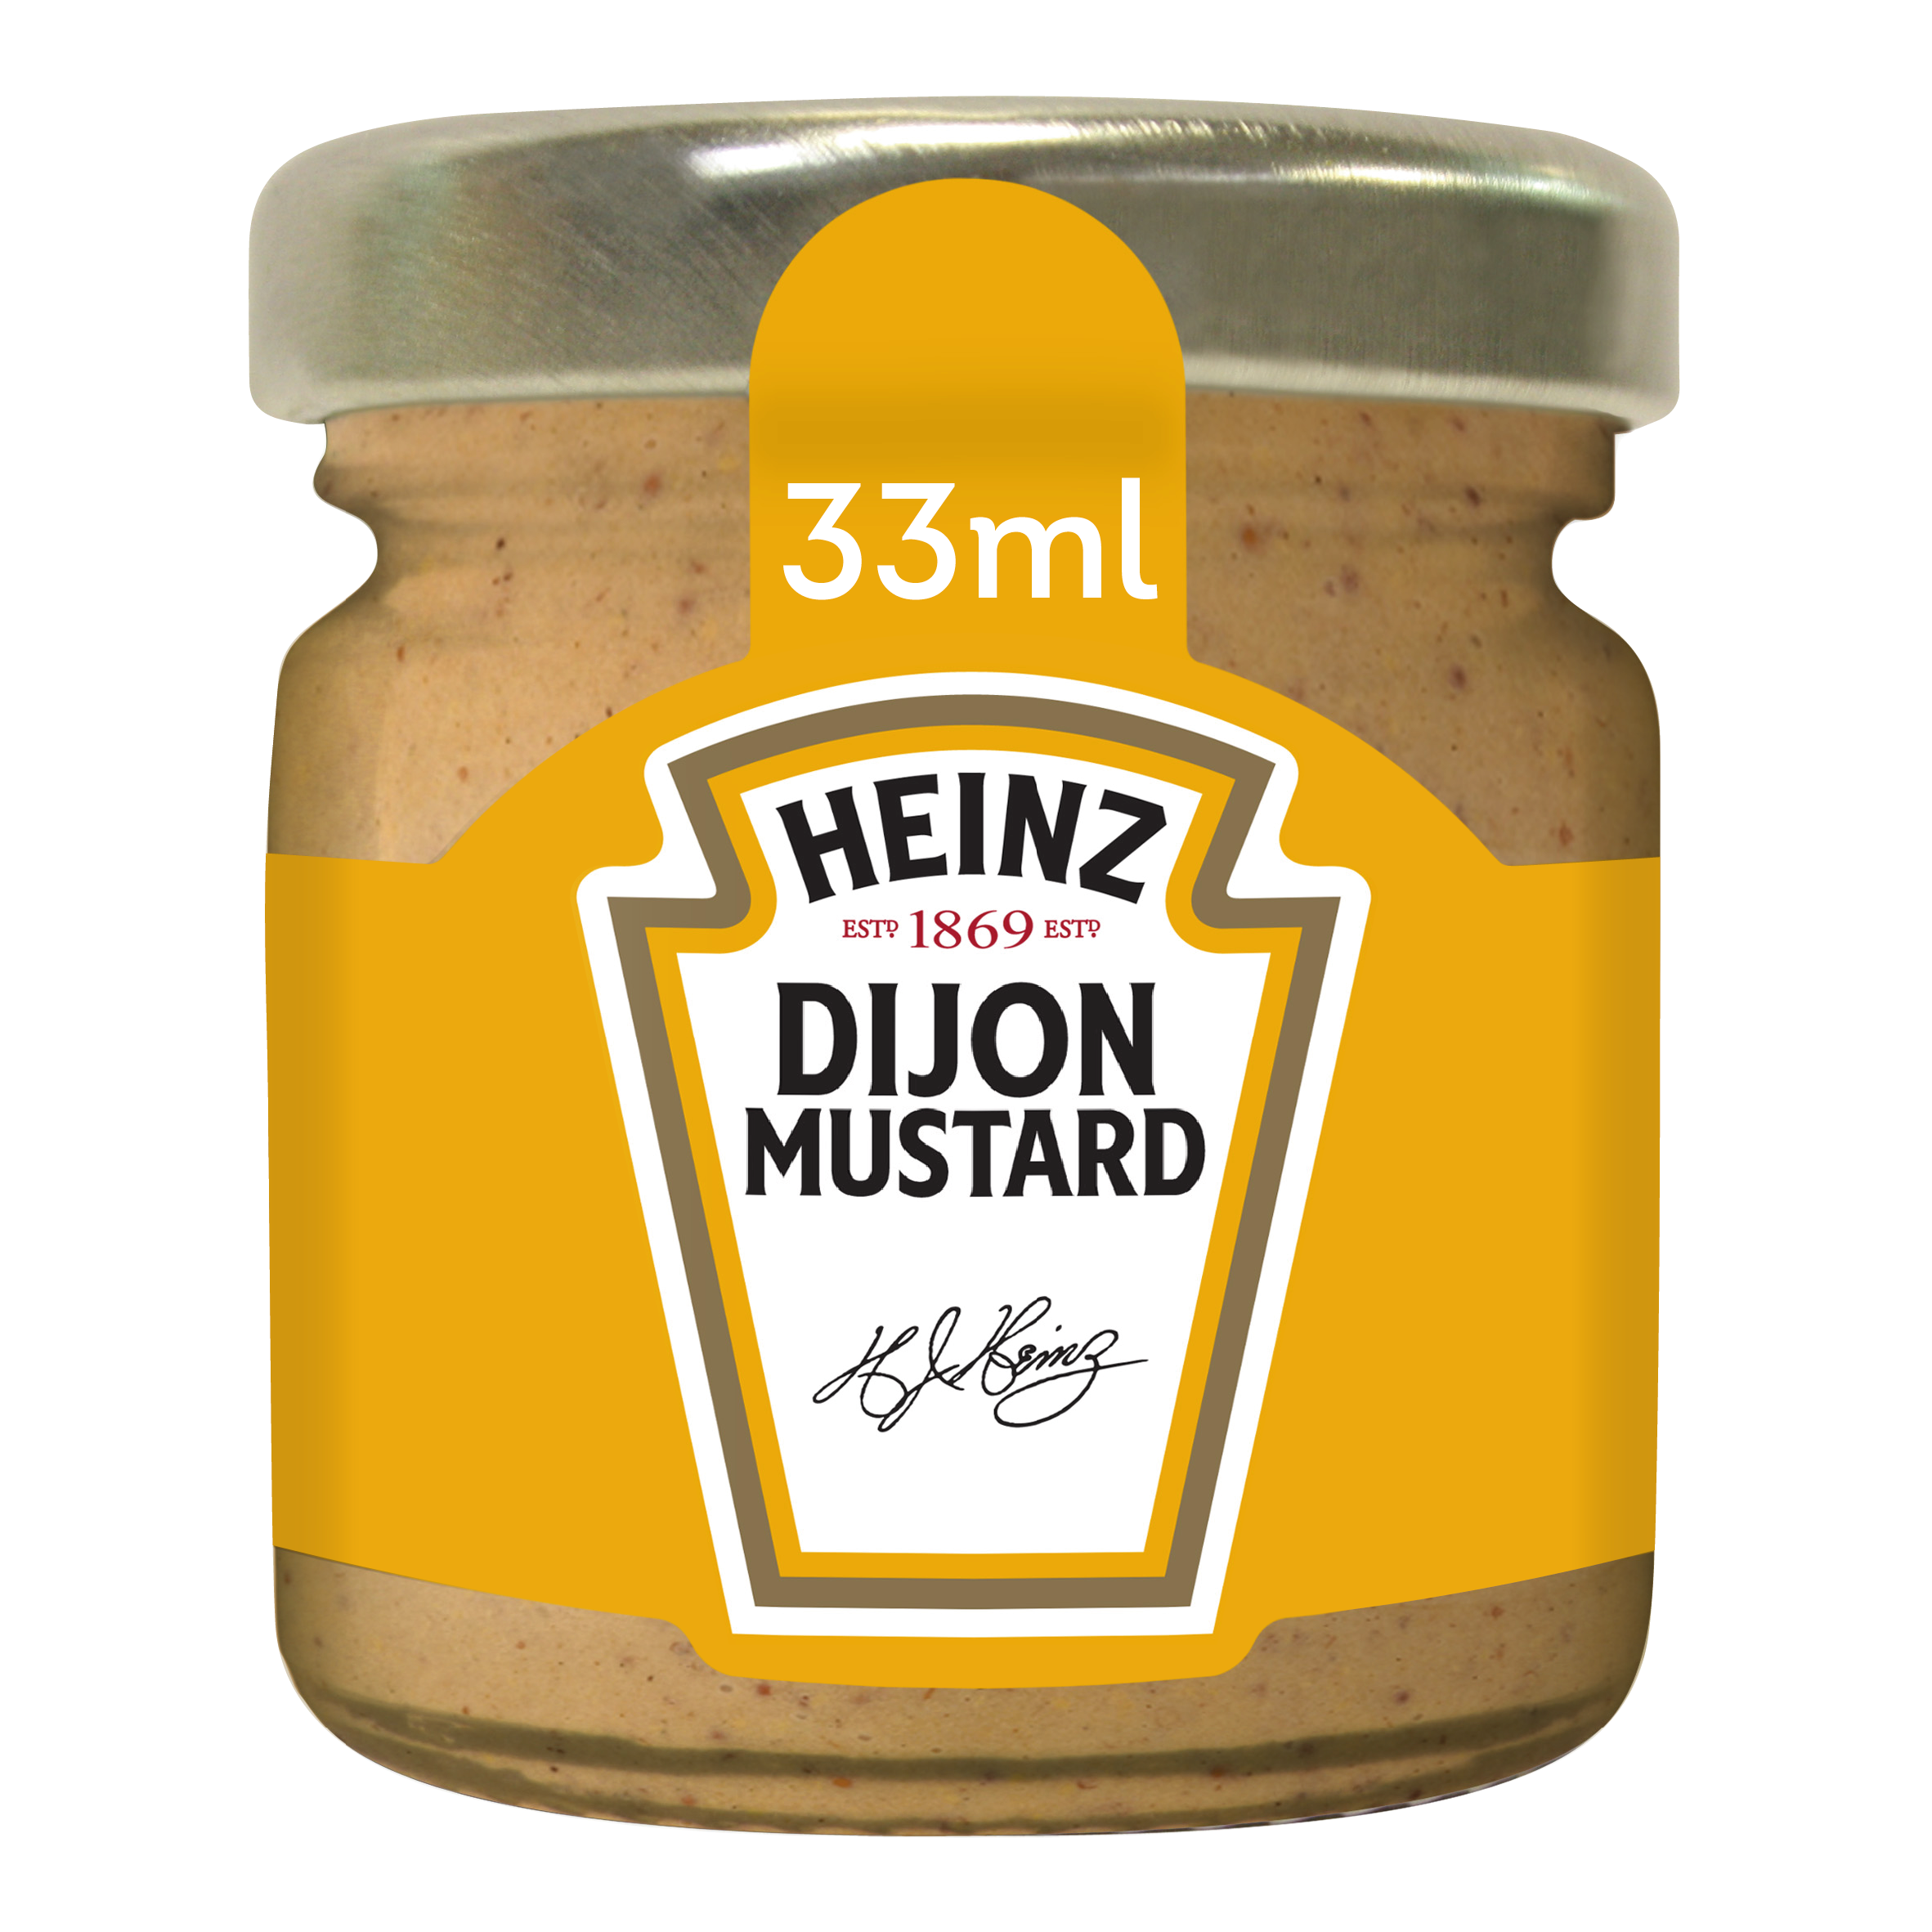 Heinz Moutarde de Dijon 33ml Mini Pot Verre